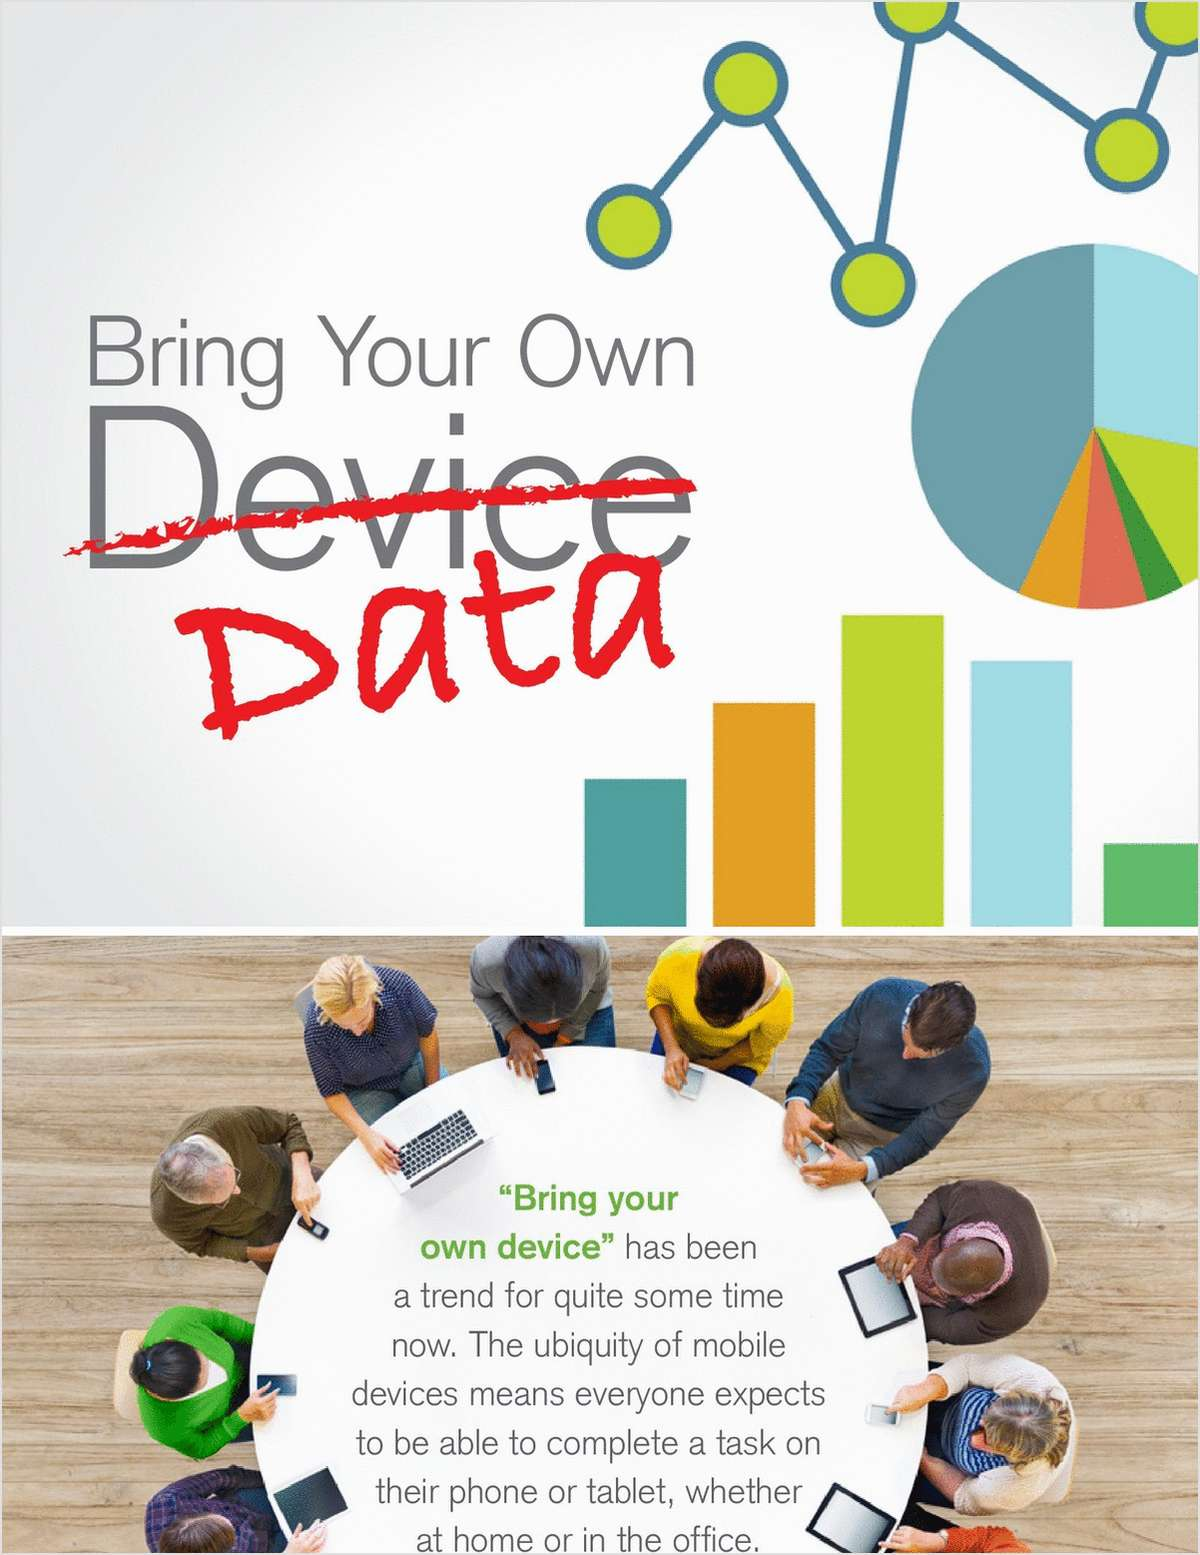 Bring Your Own Data